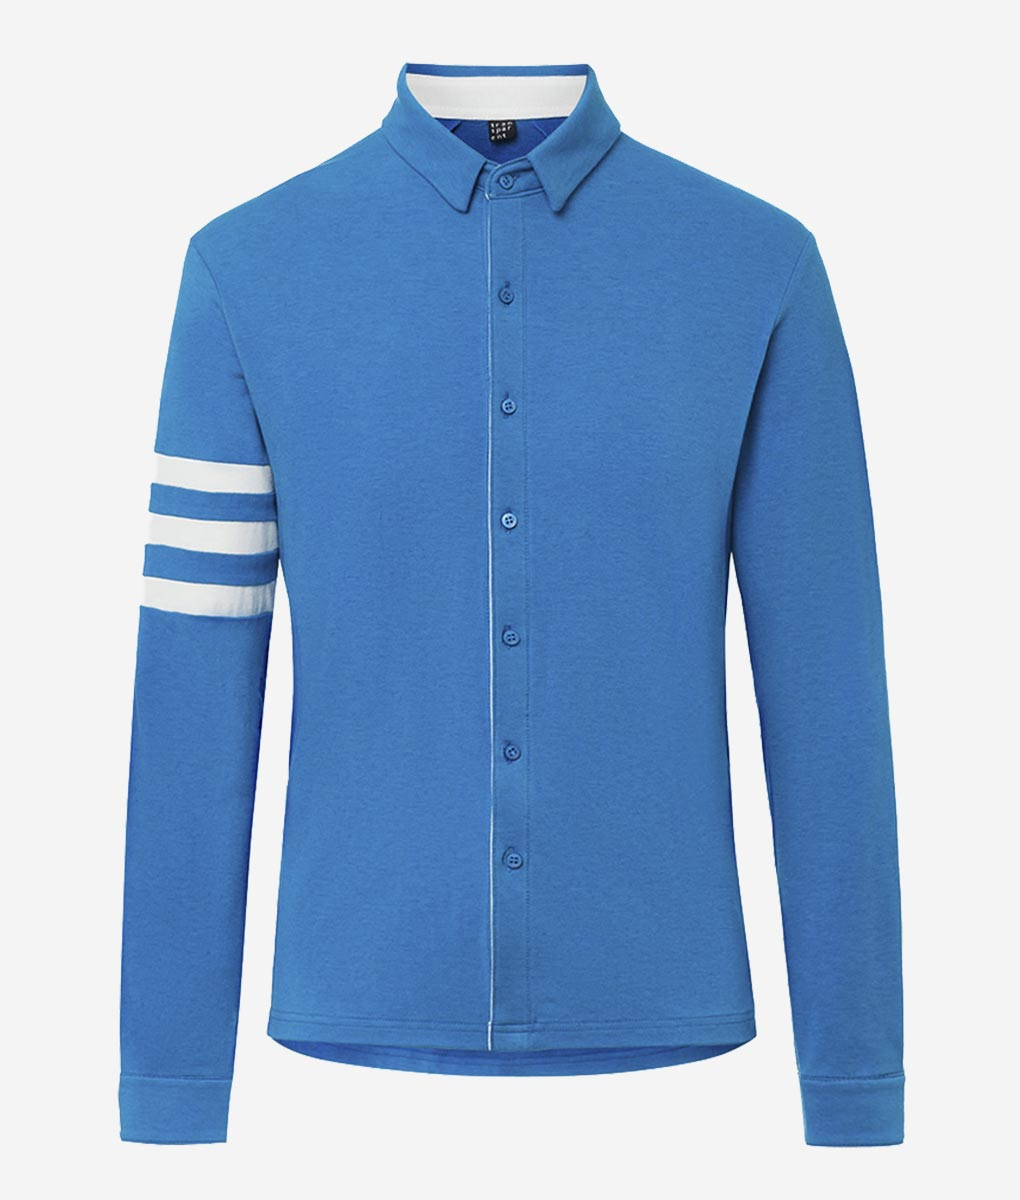 casual-cycling-transparent-Light- Blue-Merino-Shirt-front